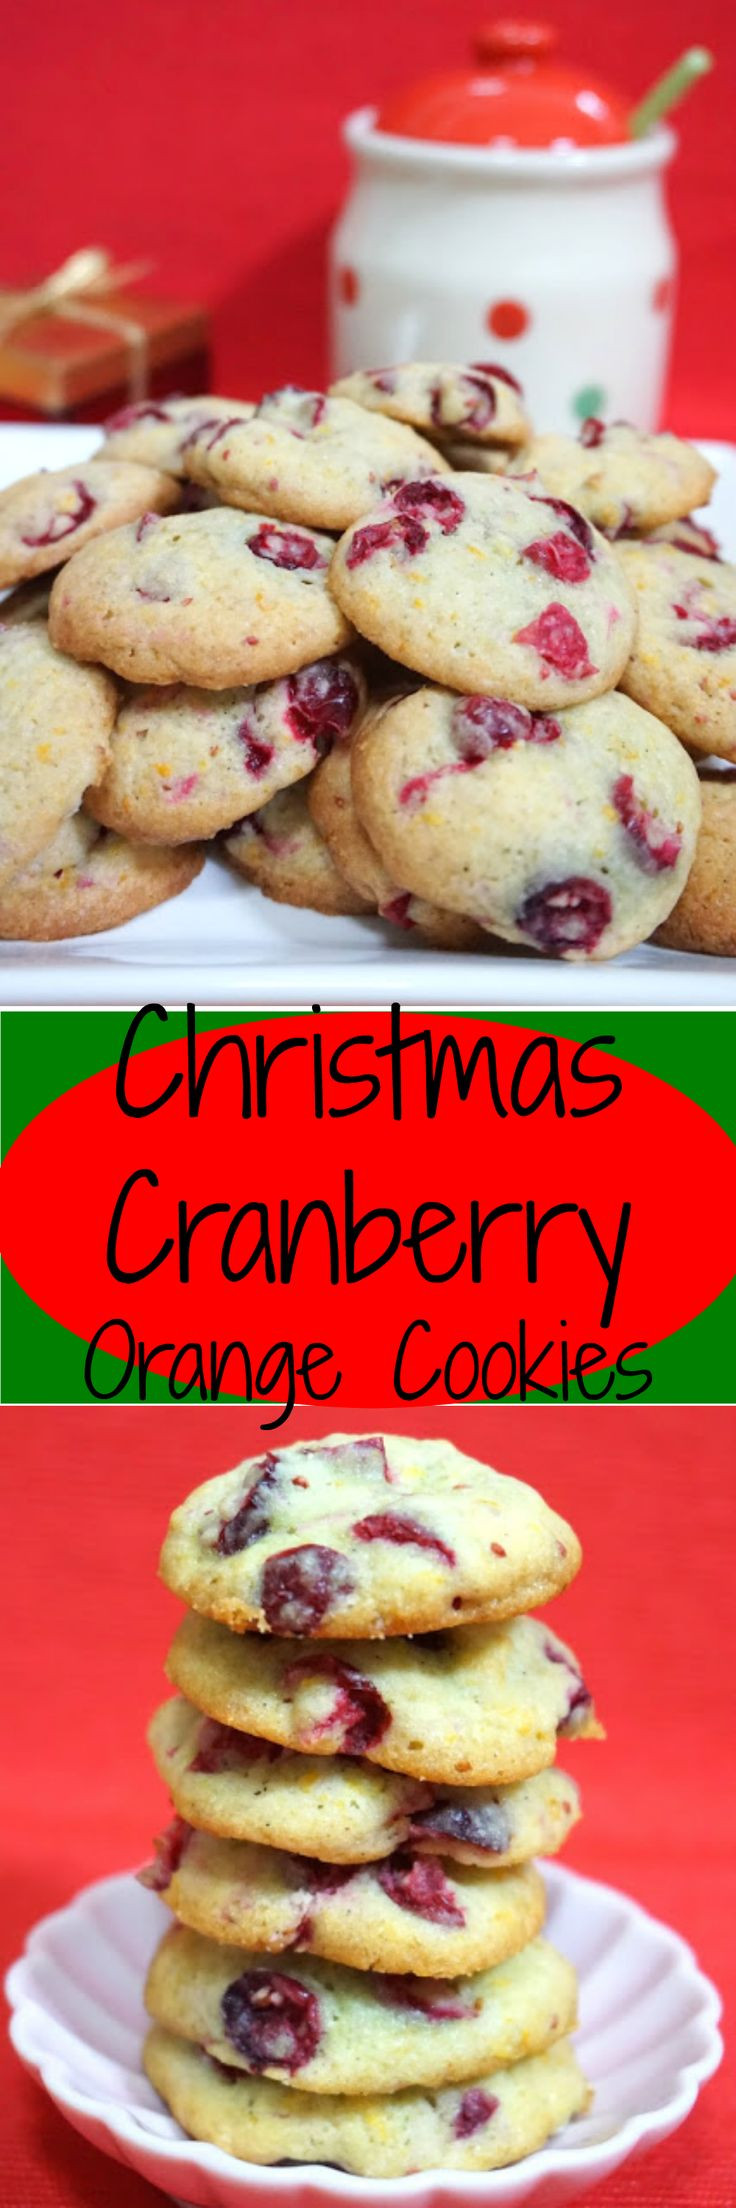 Cranberry Christmas Cookies  Fresh Cranberry Orange Cookies for Christmas Celebrate